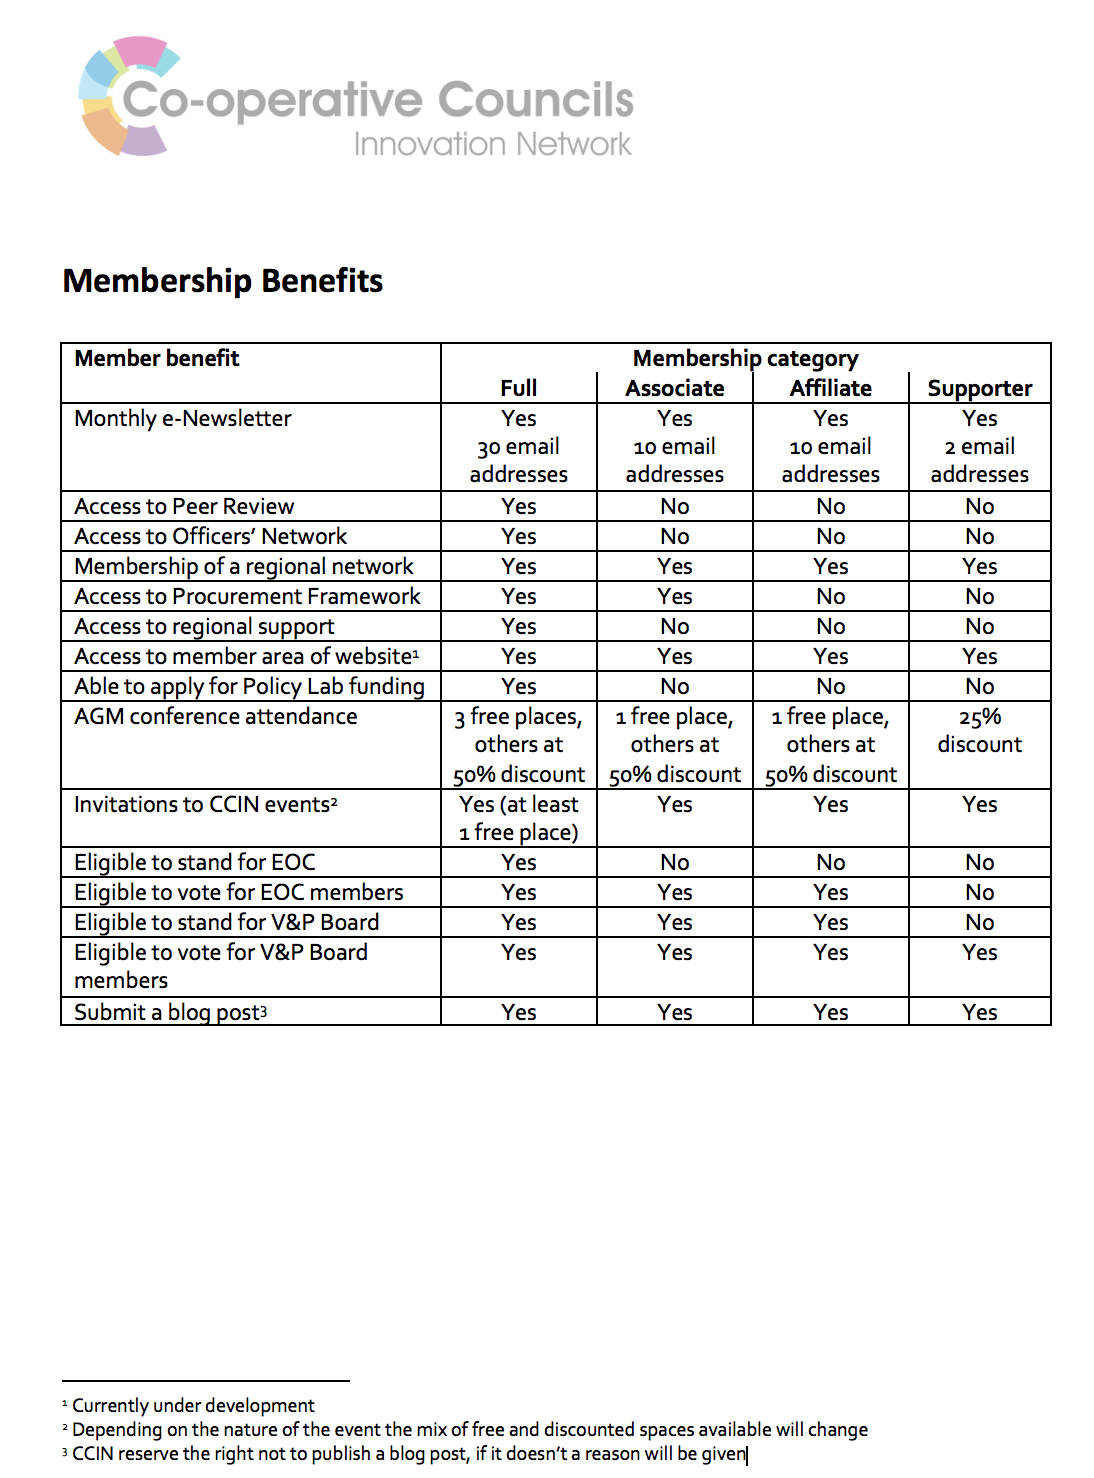 Membership Benefits Table